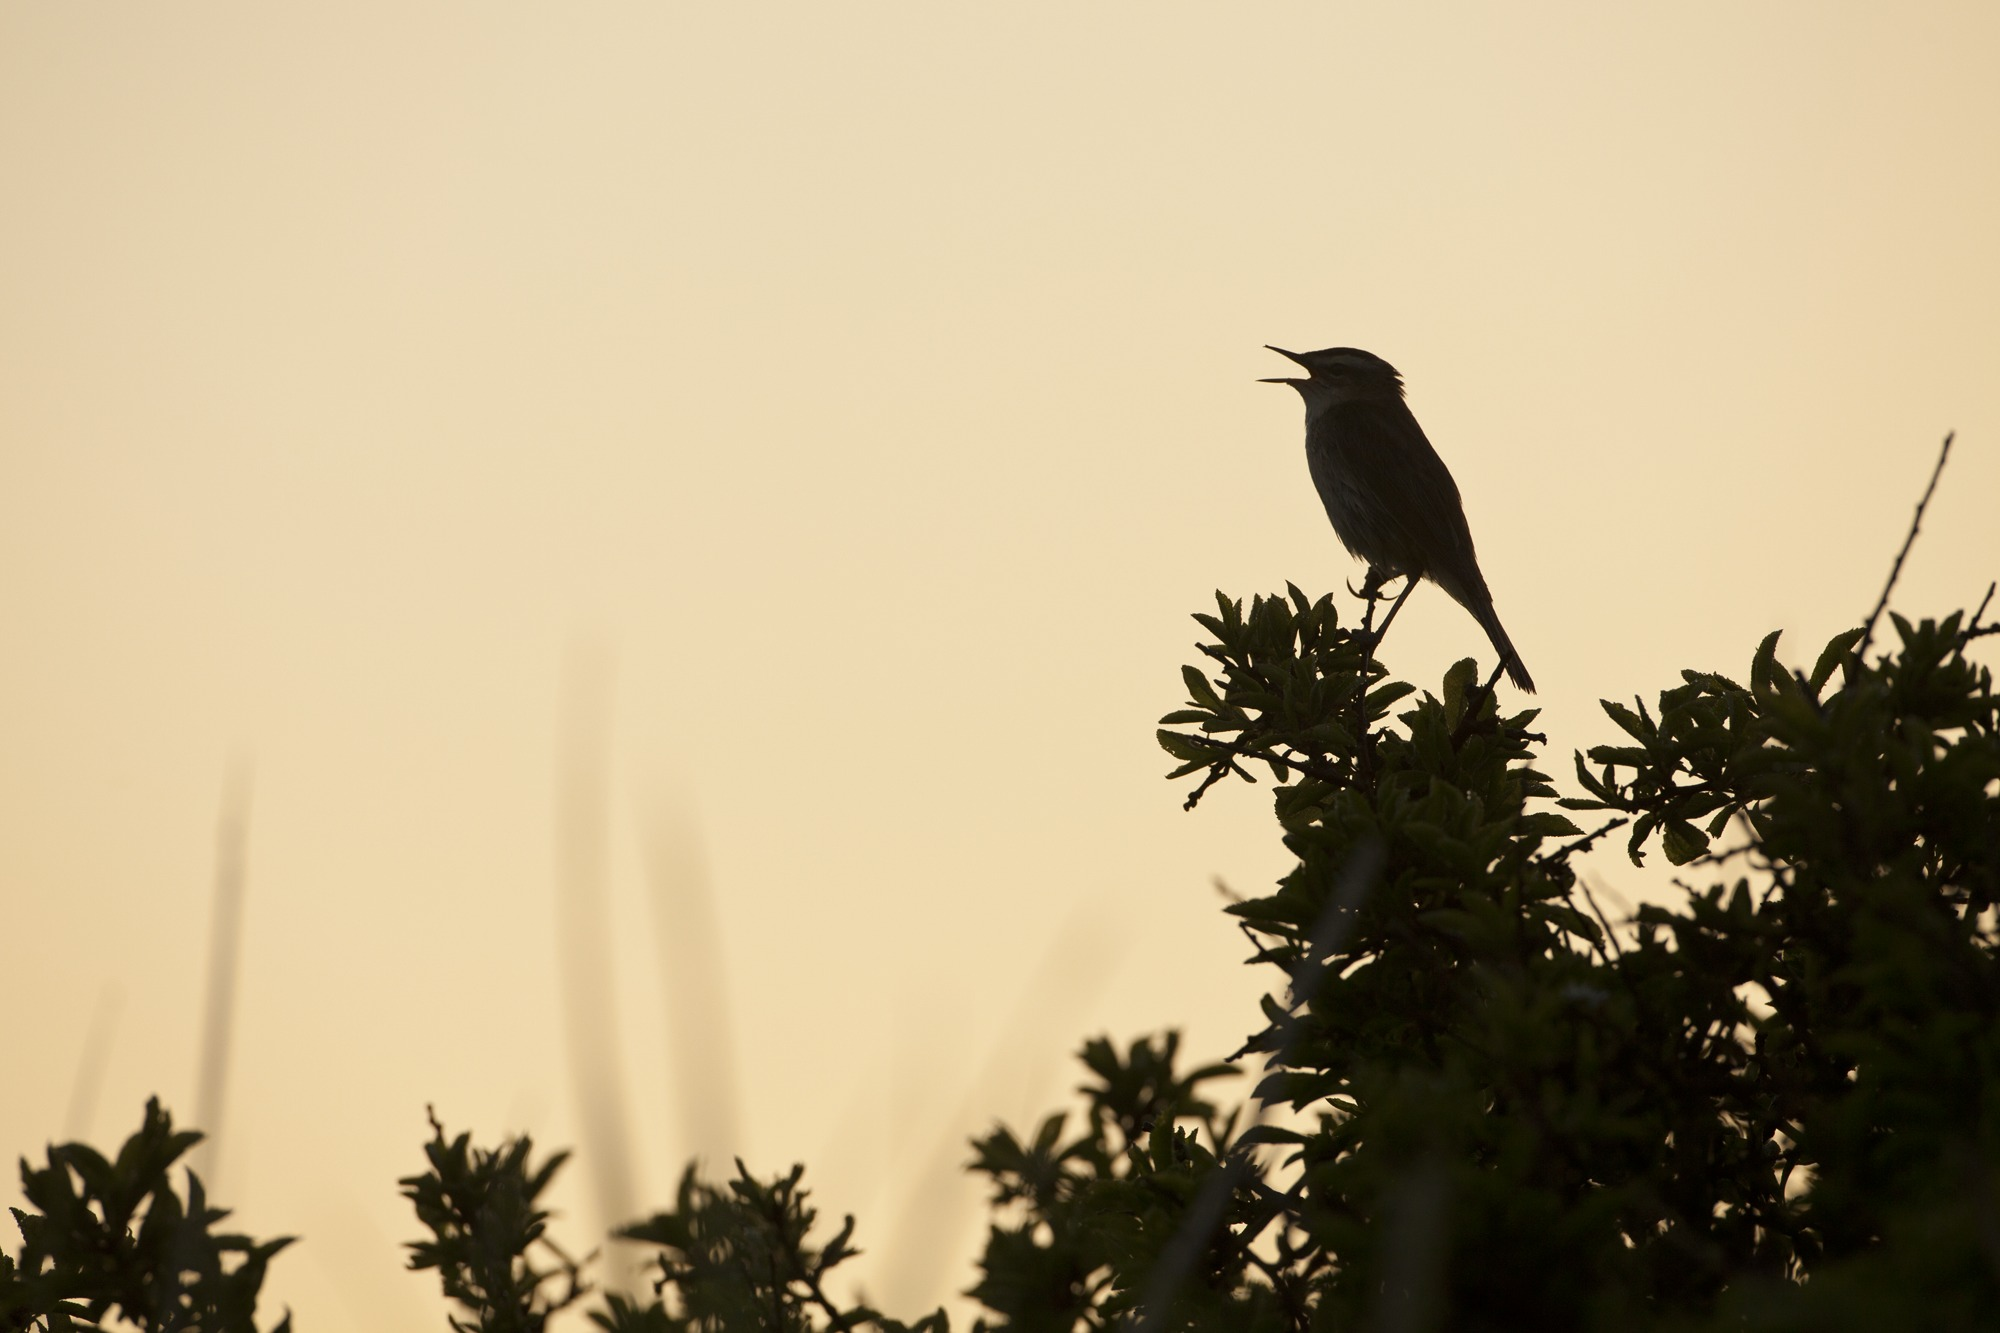 An ealry bird takes part in the dawn chorus by Mark Hamblin